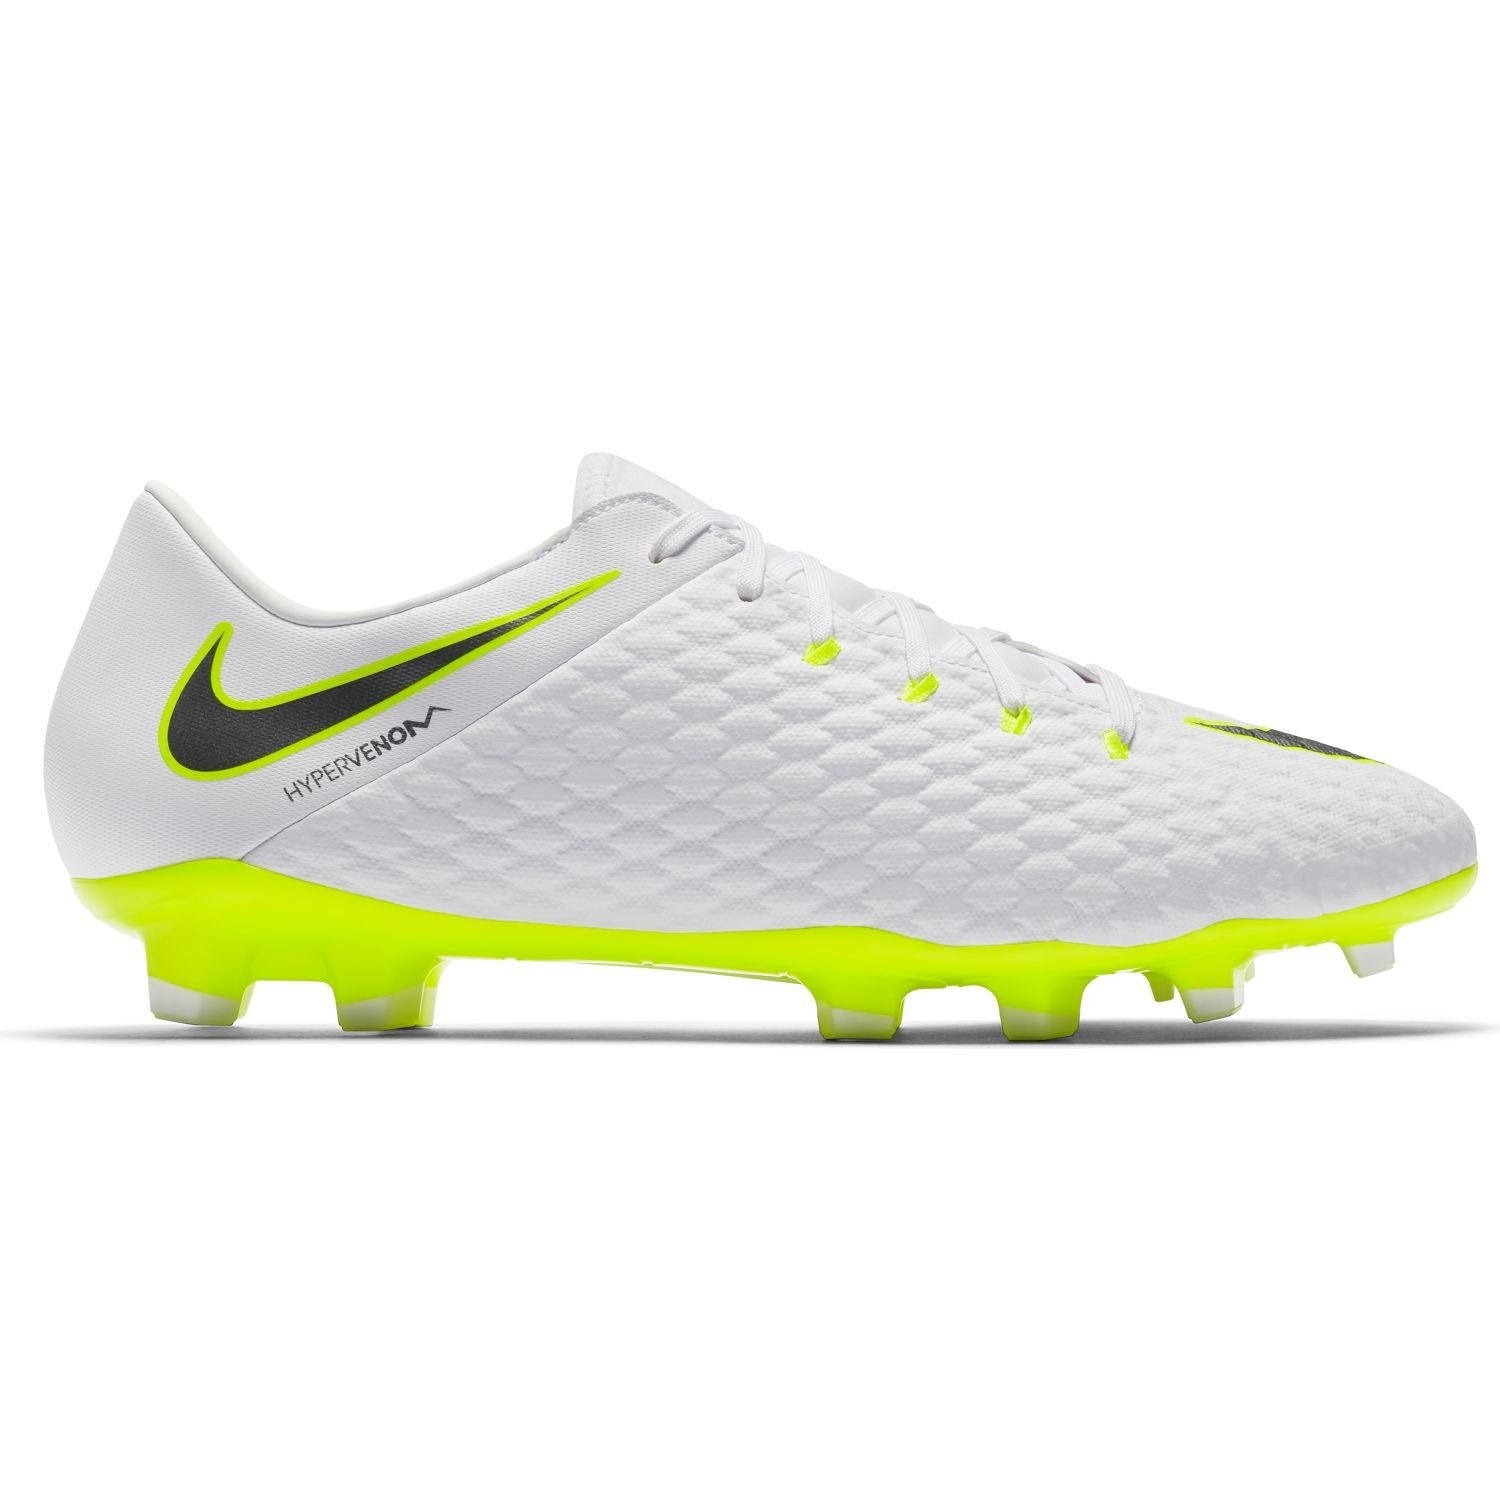 621853830a0 Nike Hypervenom Phantom III Academy FG - Mens Football Boots - White  Metallic Cool